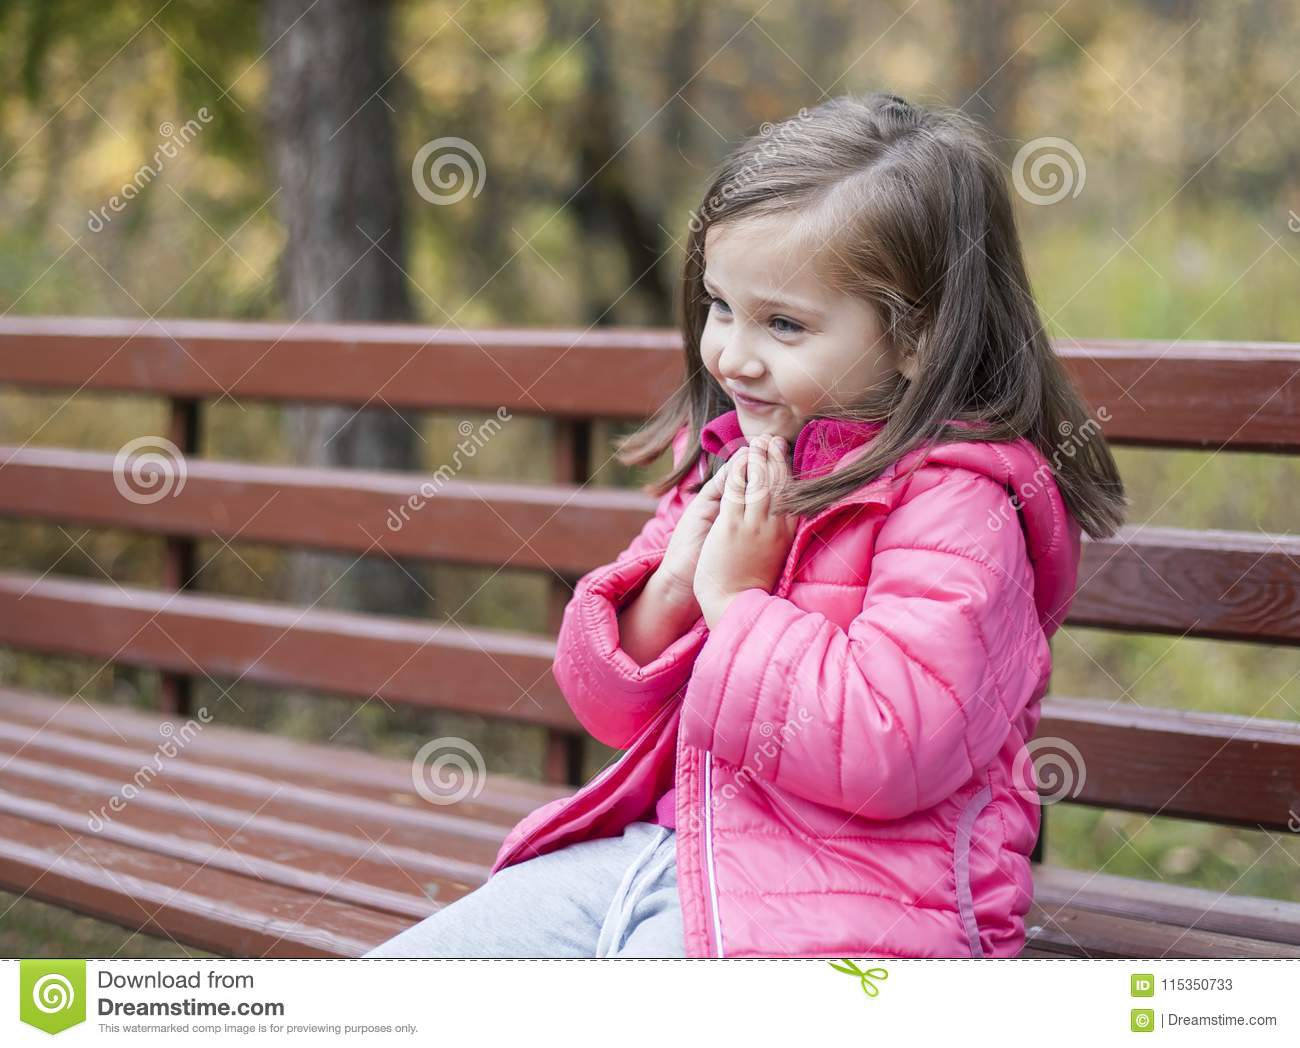 Little pretty girl in a pink coat sitting on a wood bench at the park in autumn. Emotional portrait. Childhood concept